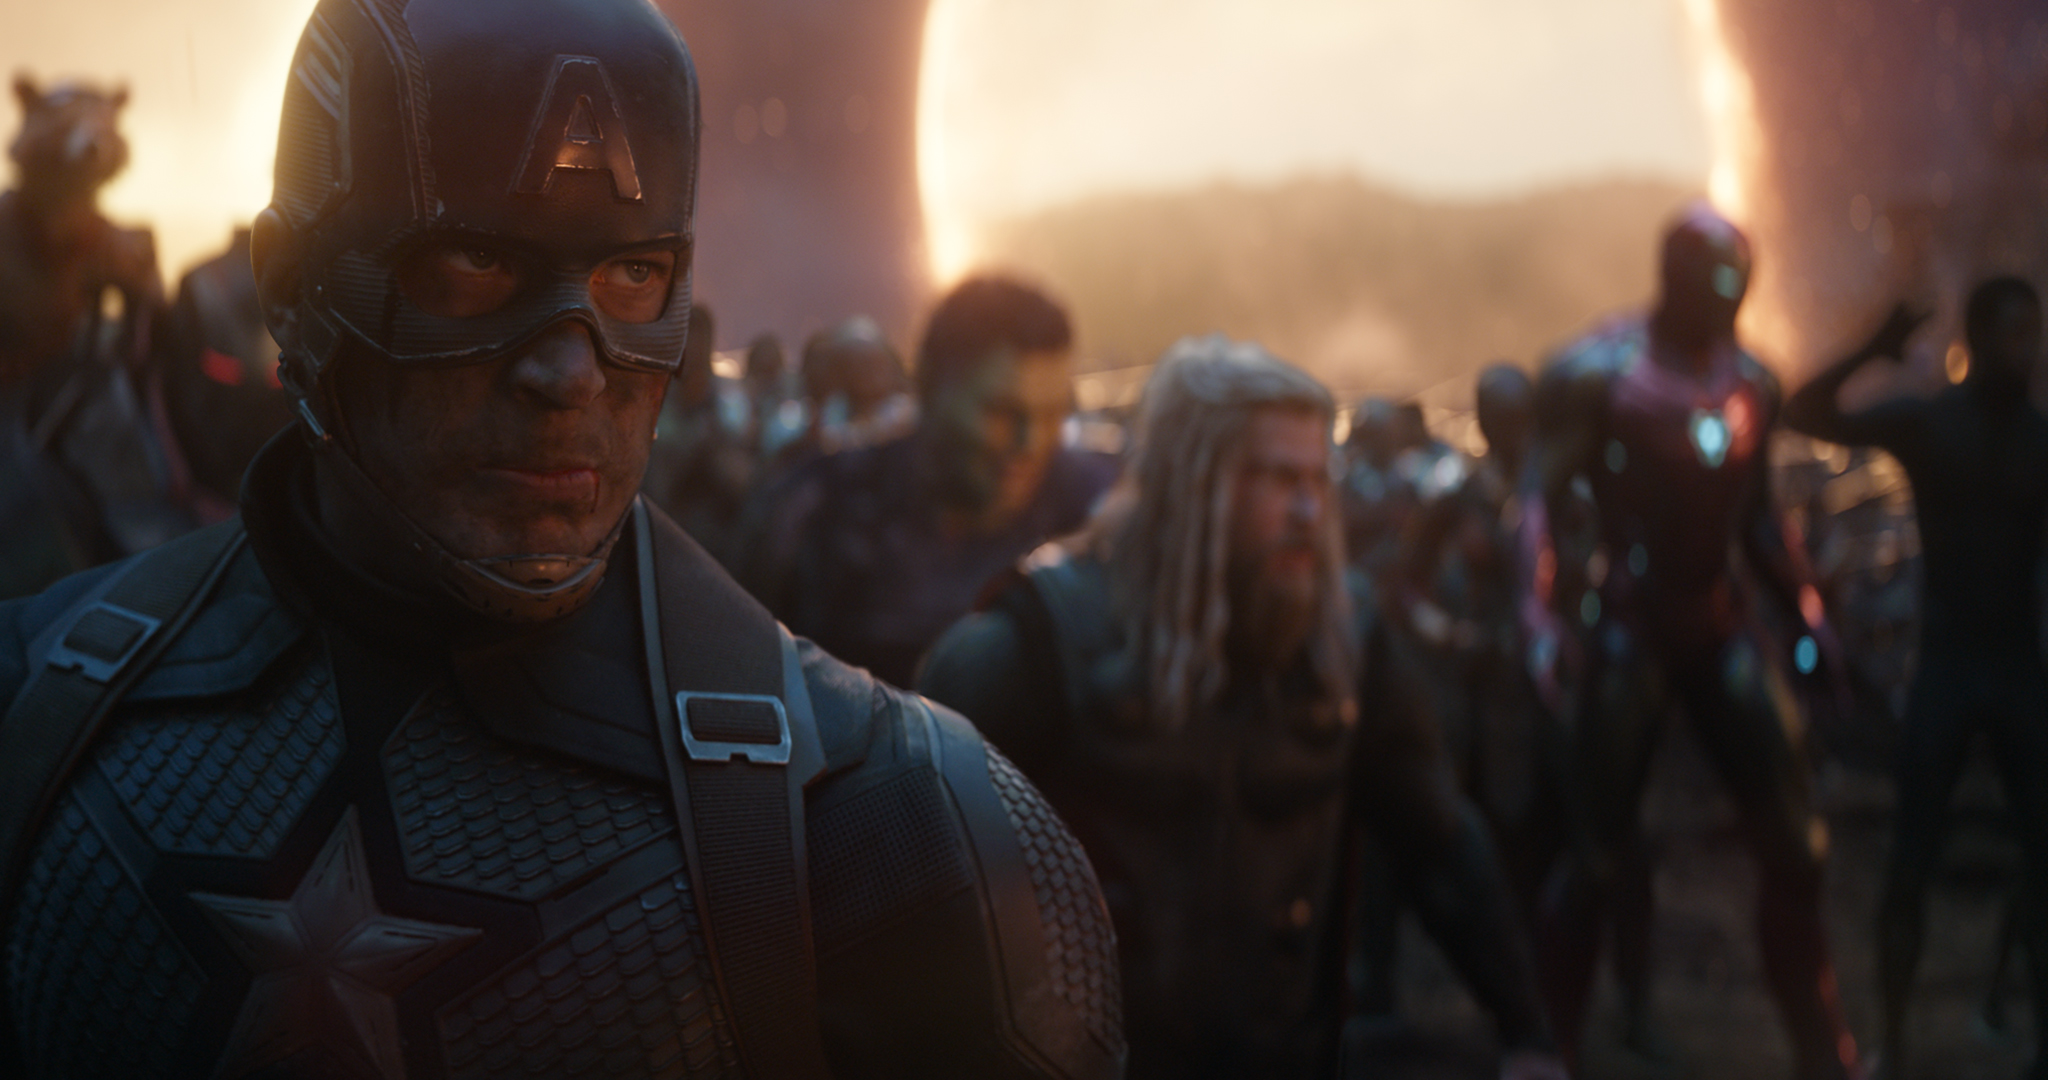 Avengers: Endgame Is Returning To Theatres With New Footage - But We Probably Won't Get To See It